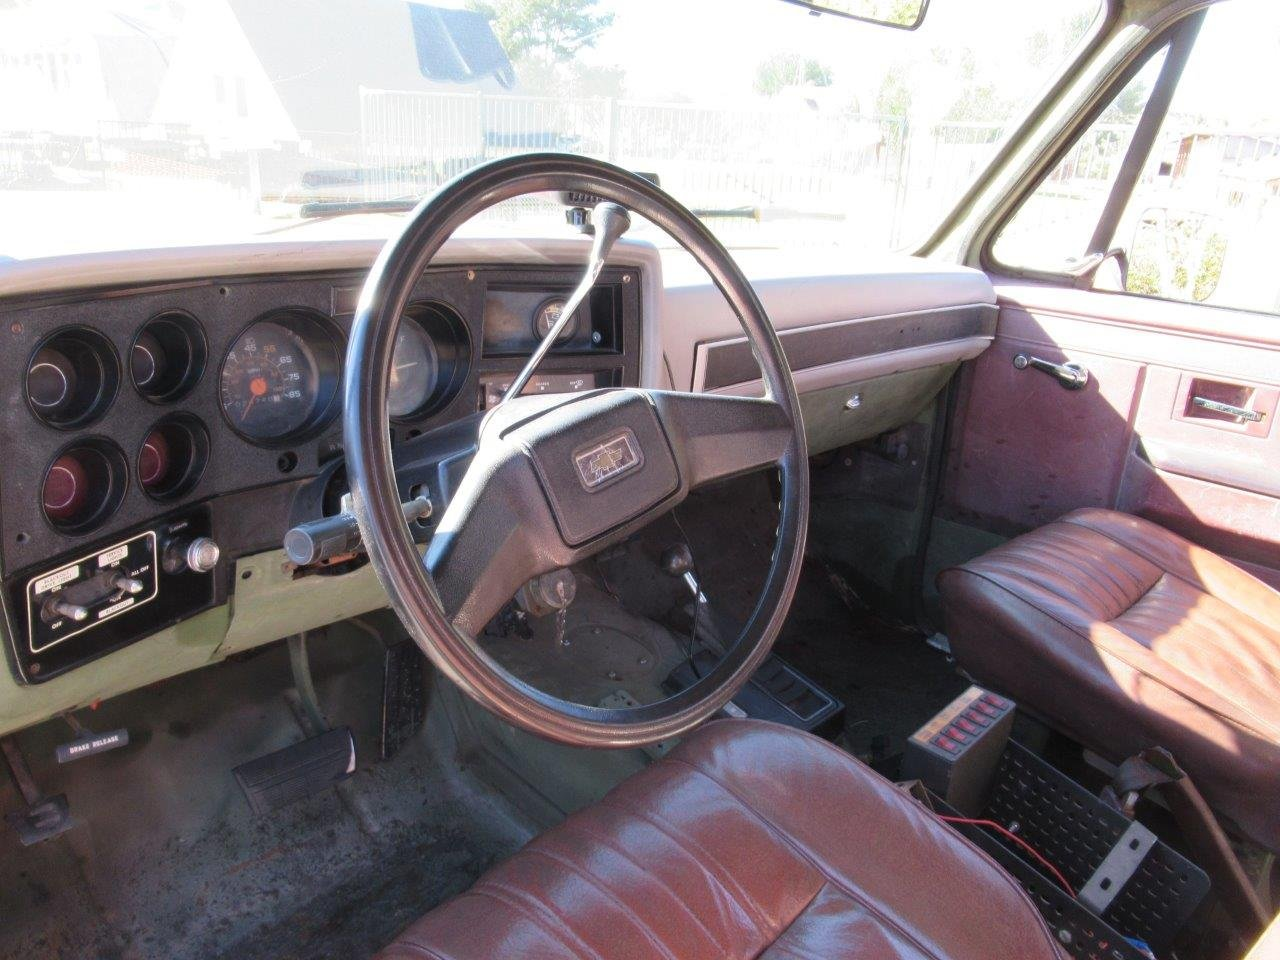 1985 Chevrolet Blazer D10/M1009 For Sale (picture 4 of 6)